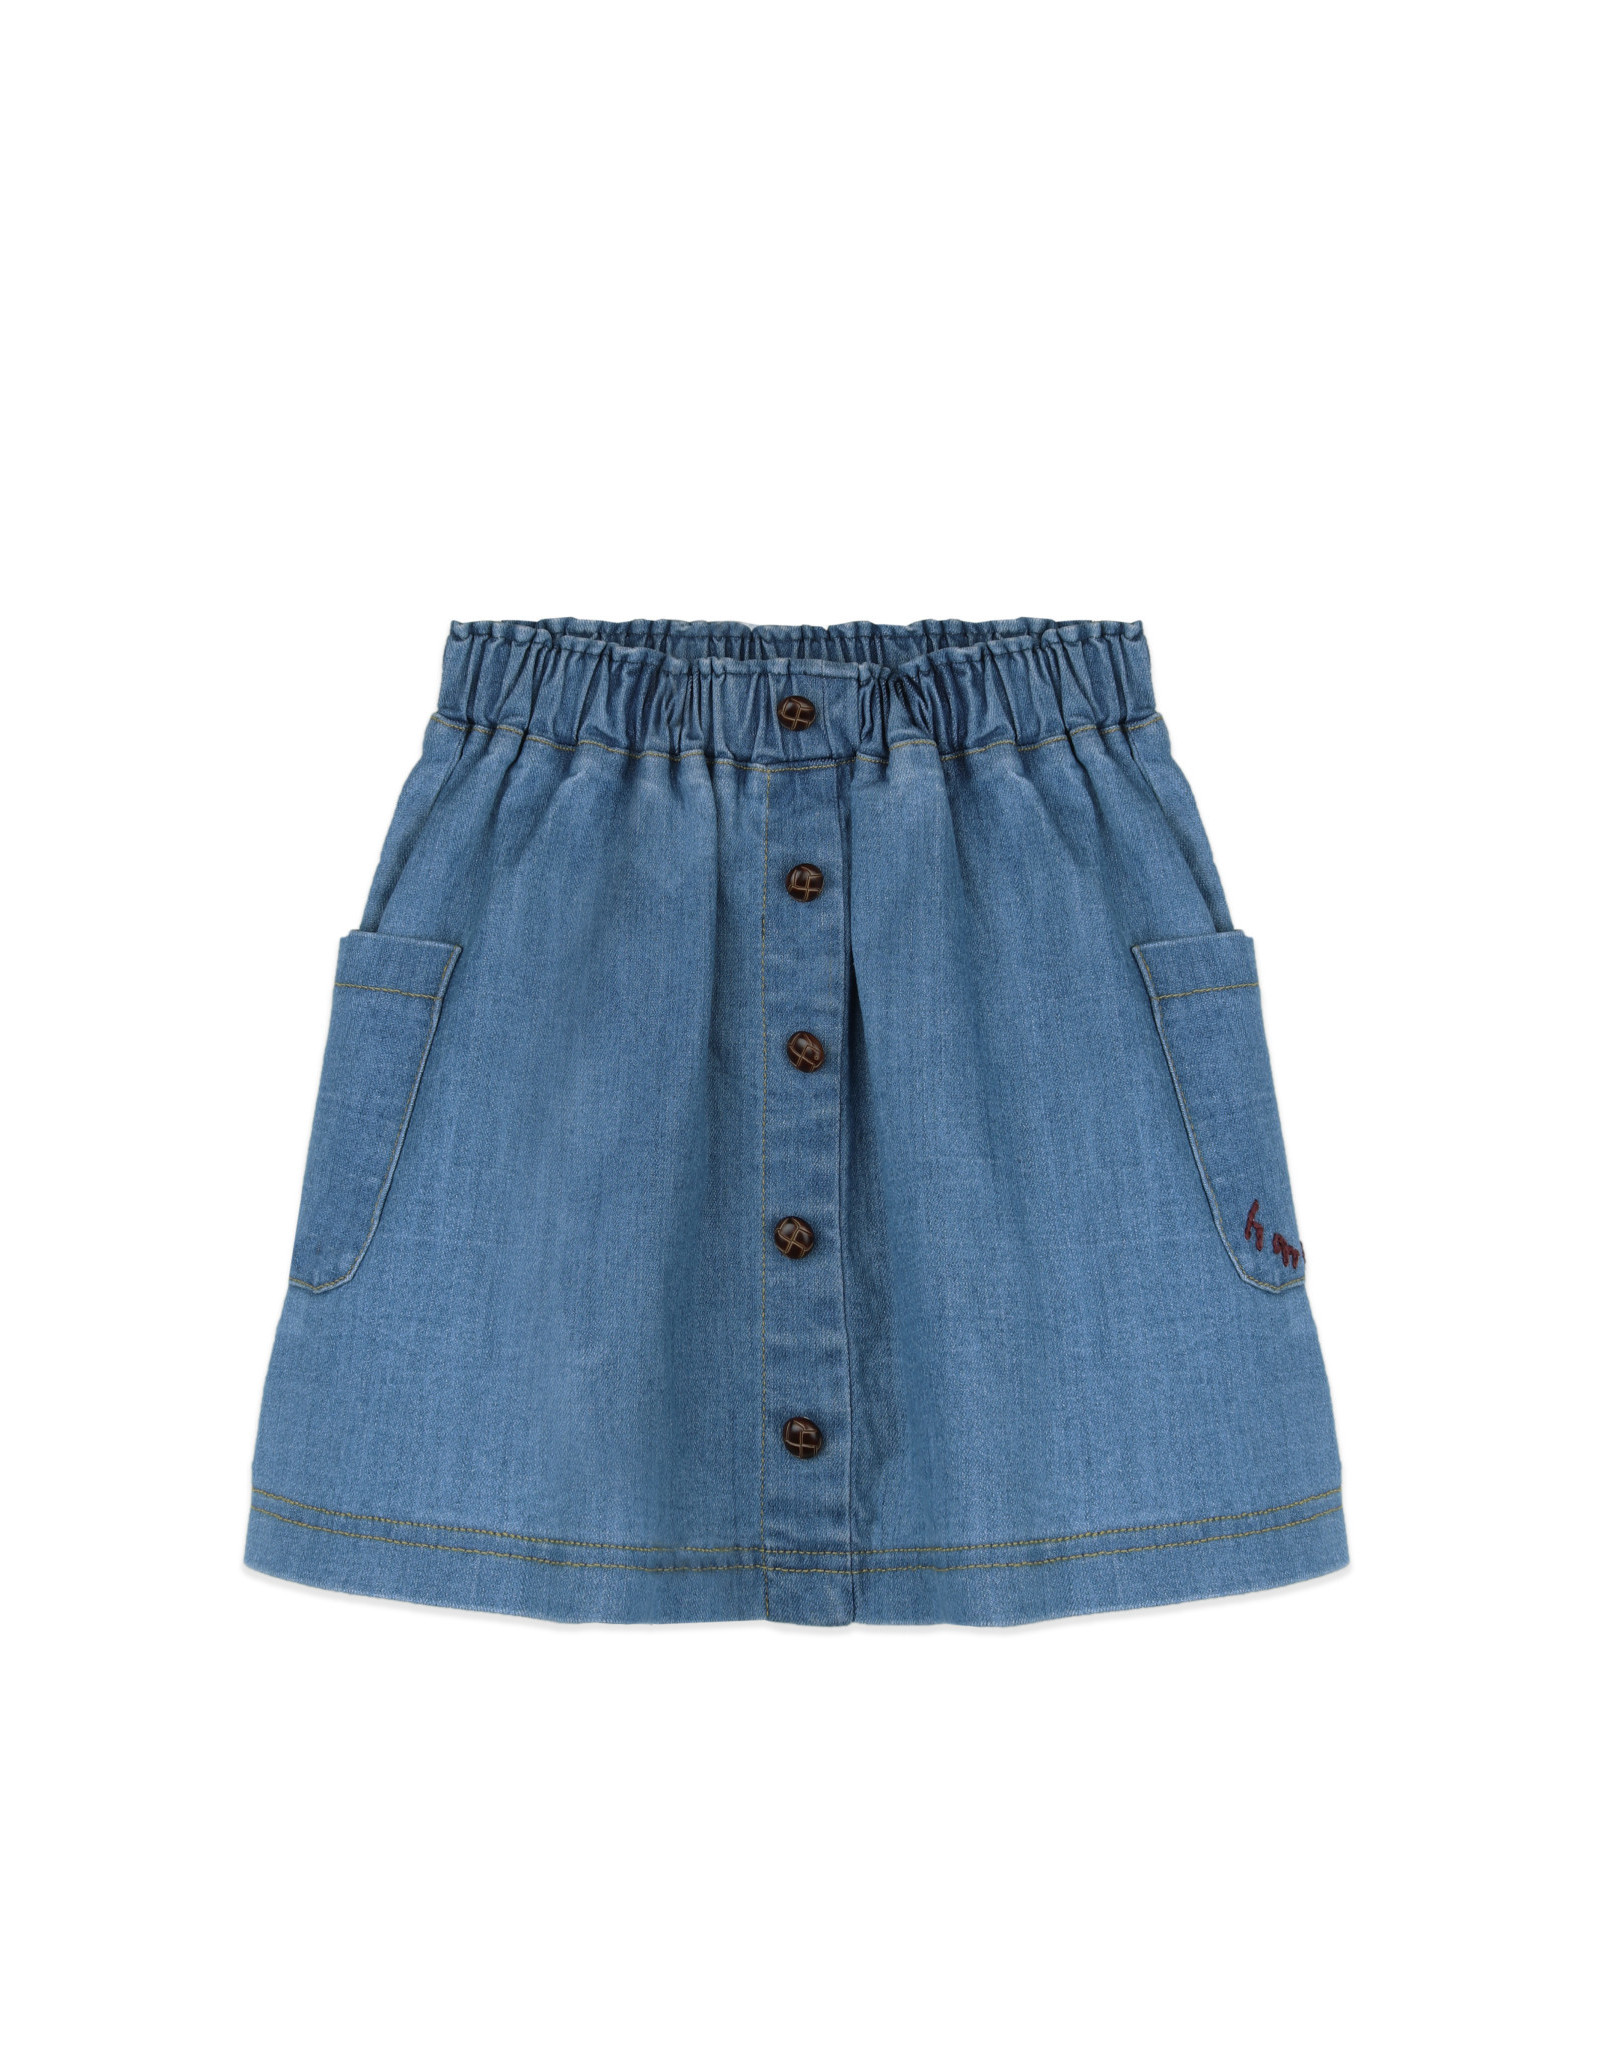 Ammehoela Denim blue skirt